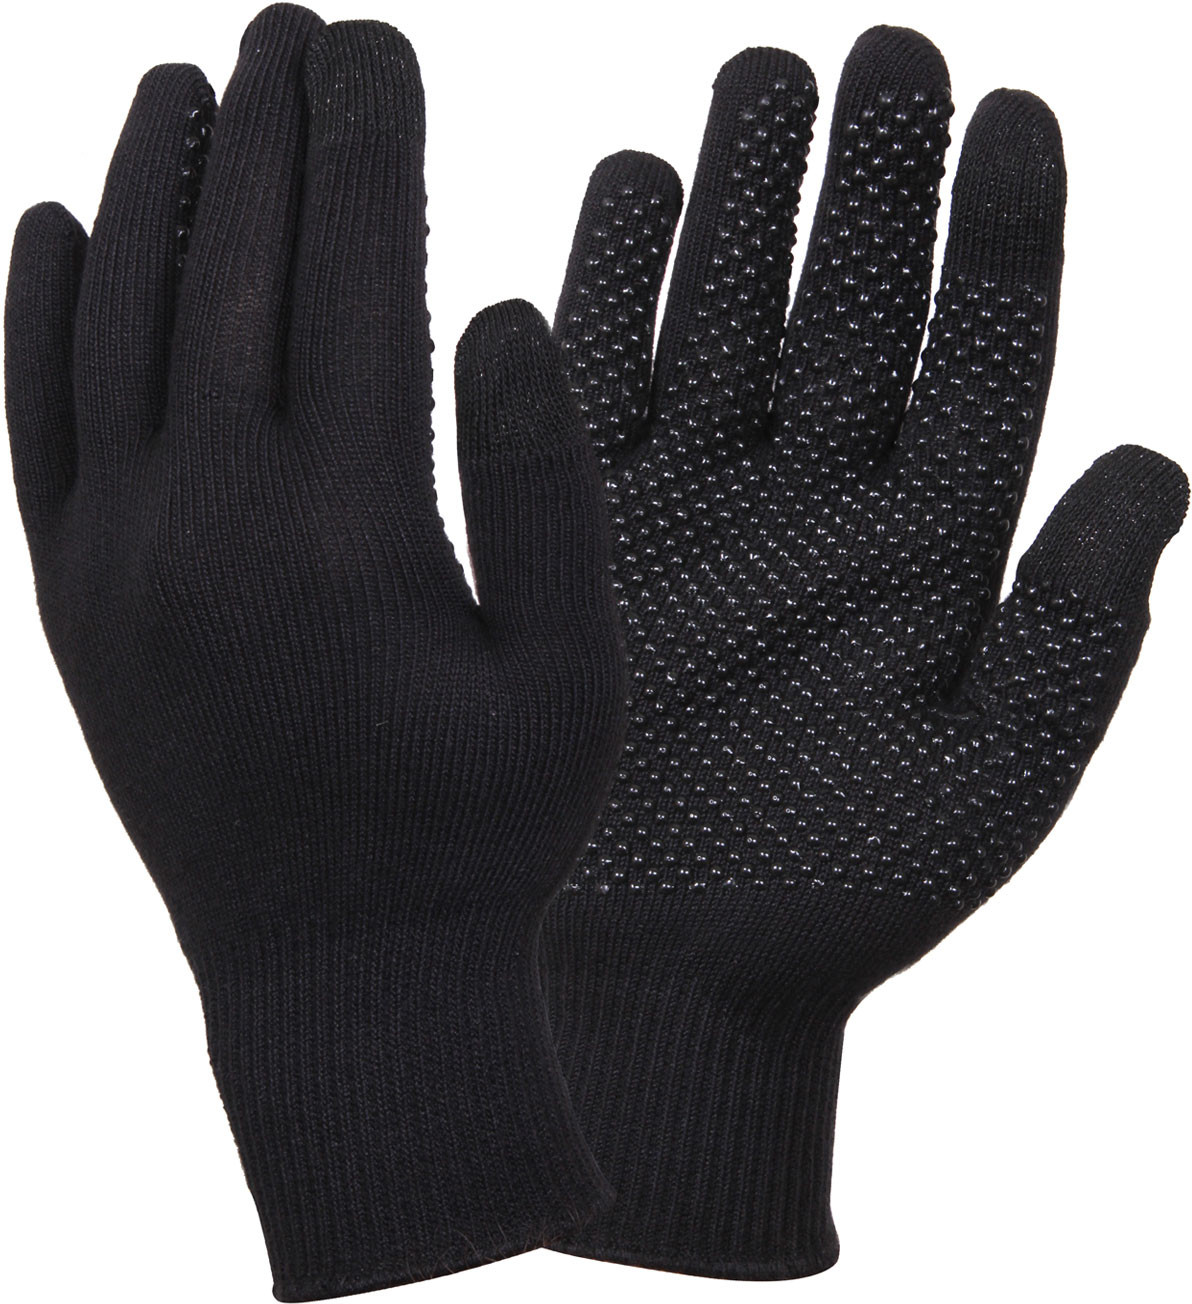 Black Touch Screen Gloves With Gripper Dots 4e683765ce9